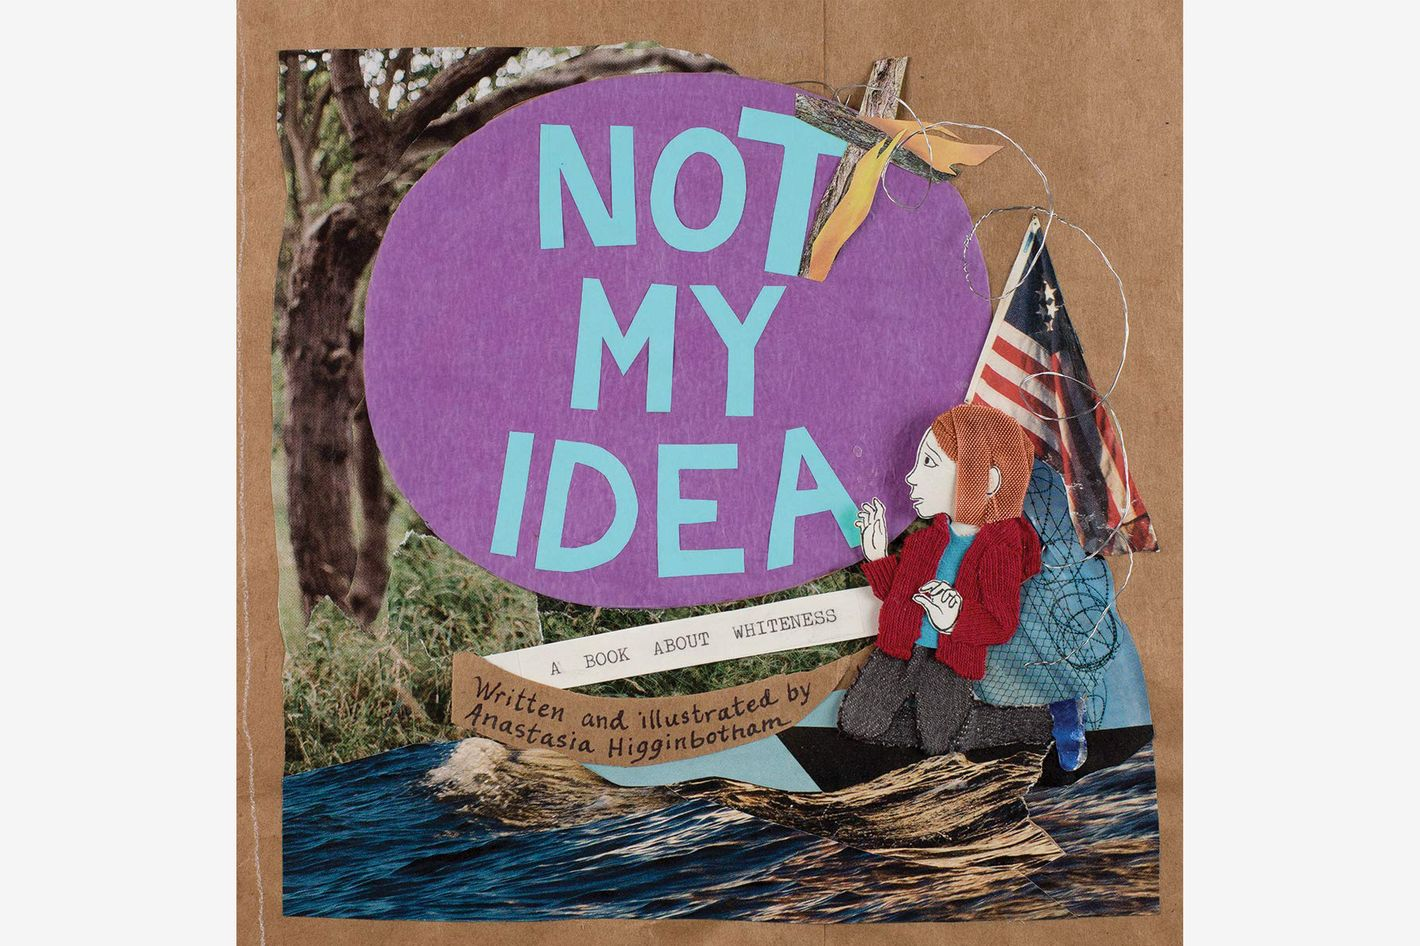 <em>Not My Idea: A Book About Whiteness (Ordinary Terrible Things)</em>, by Anastasia Higginbotham